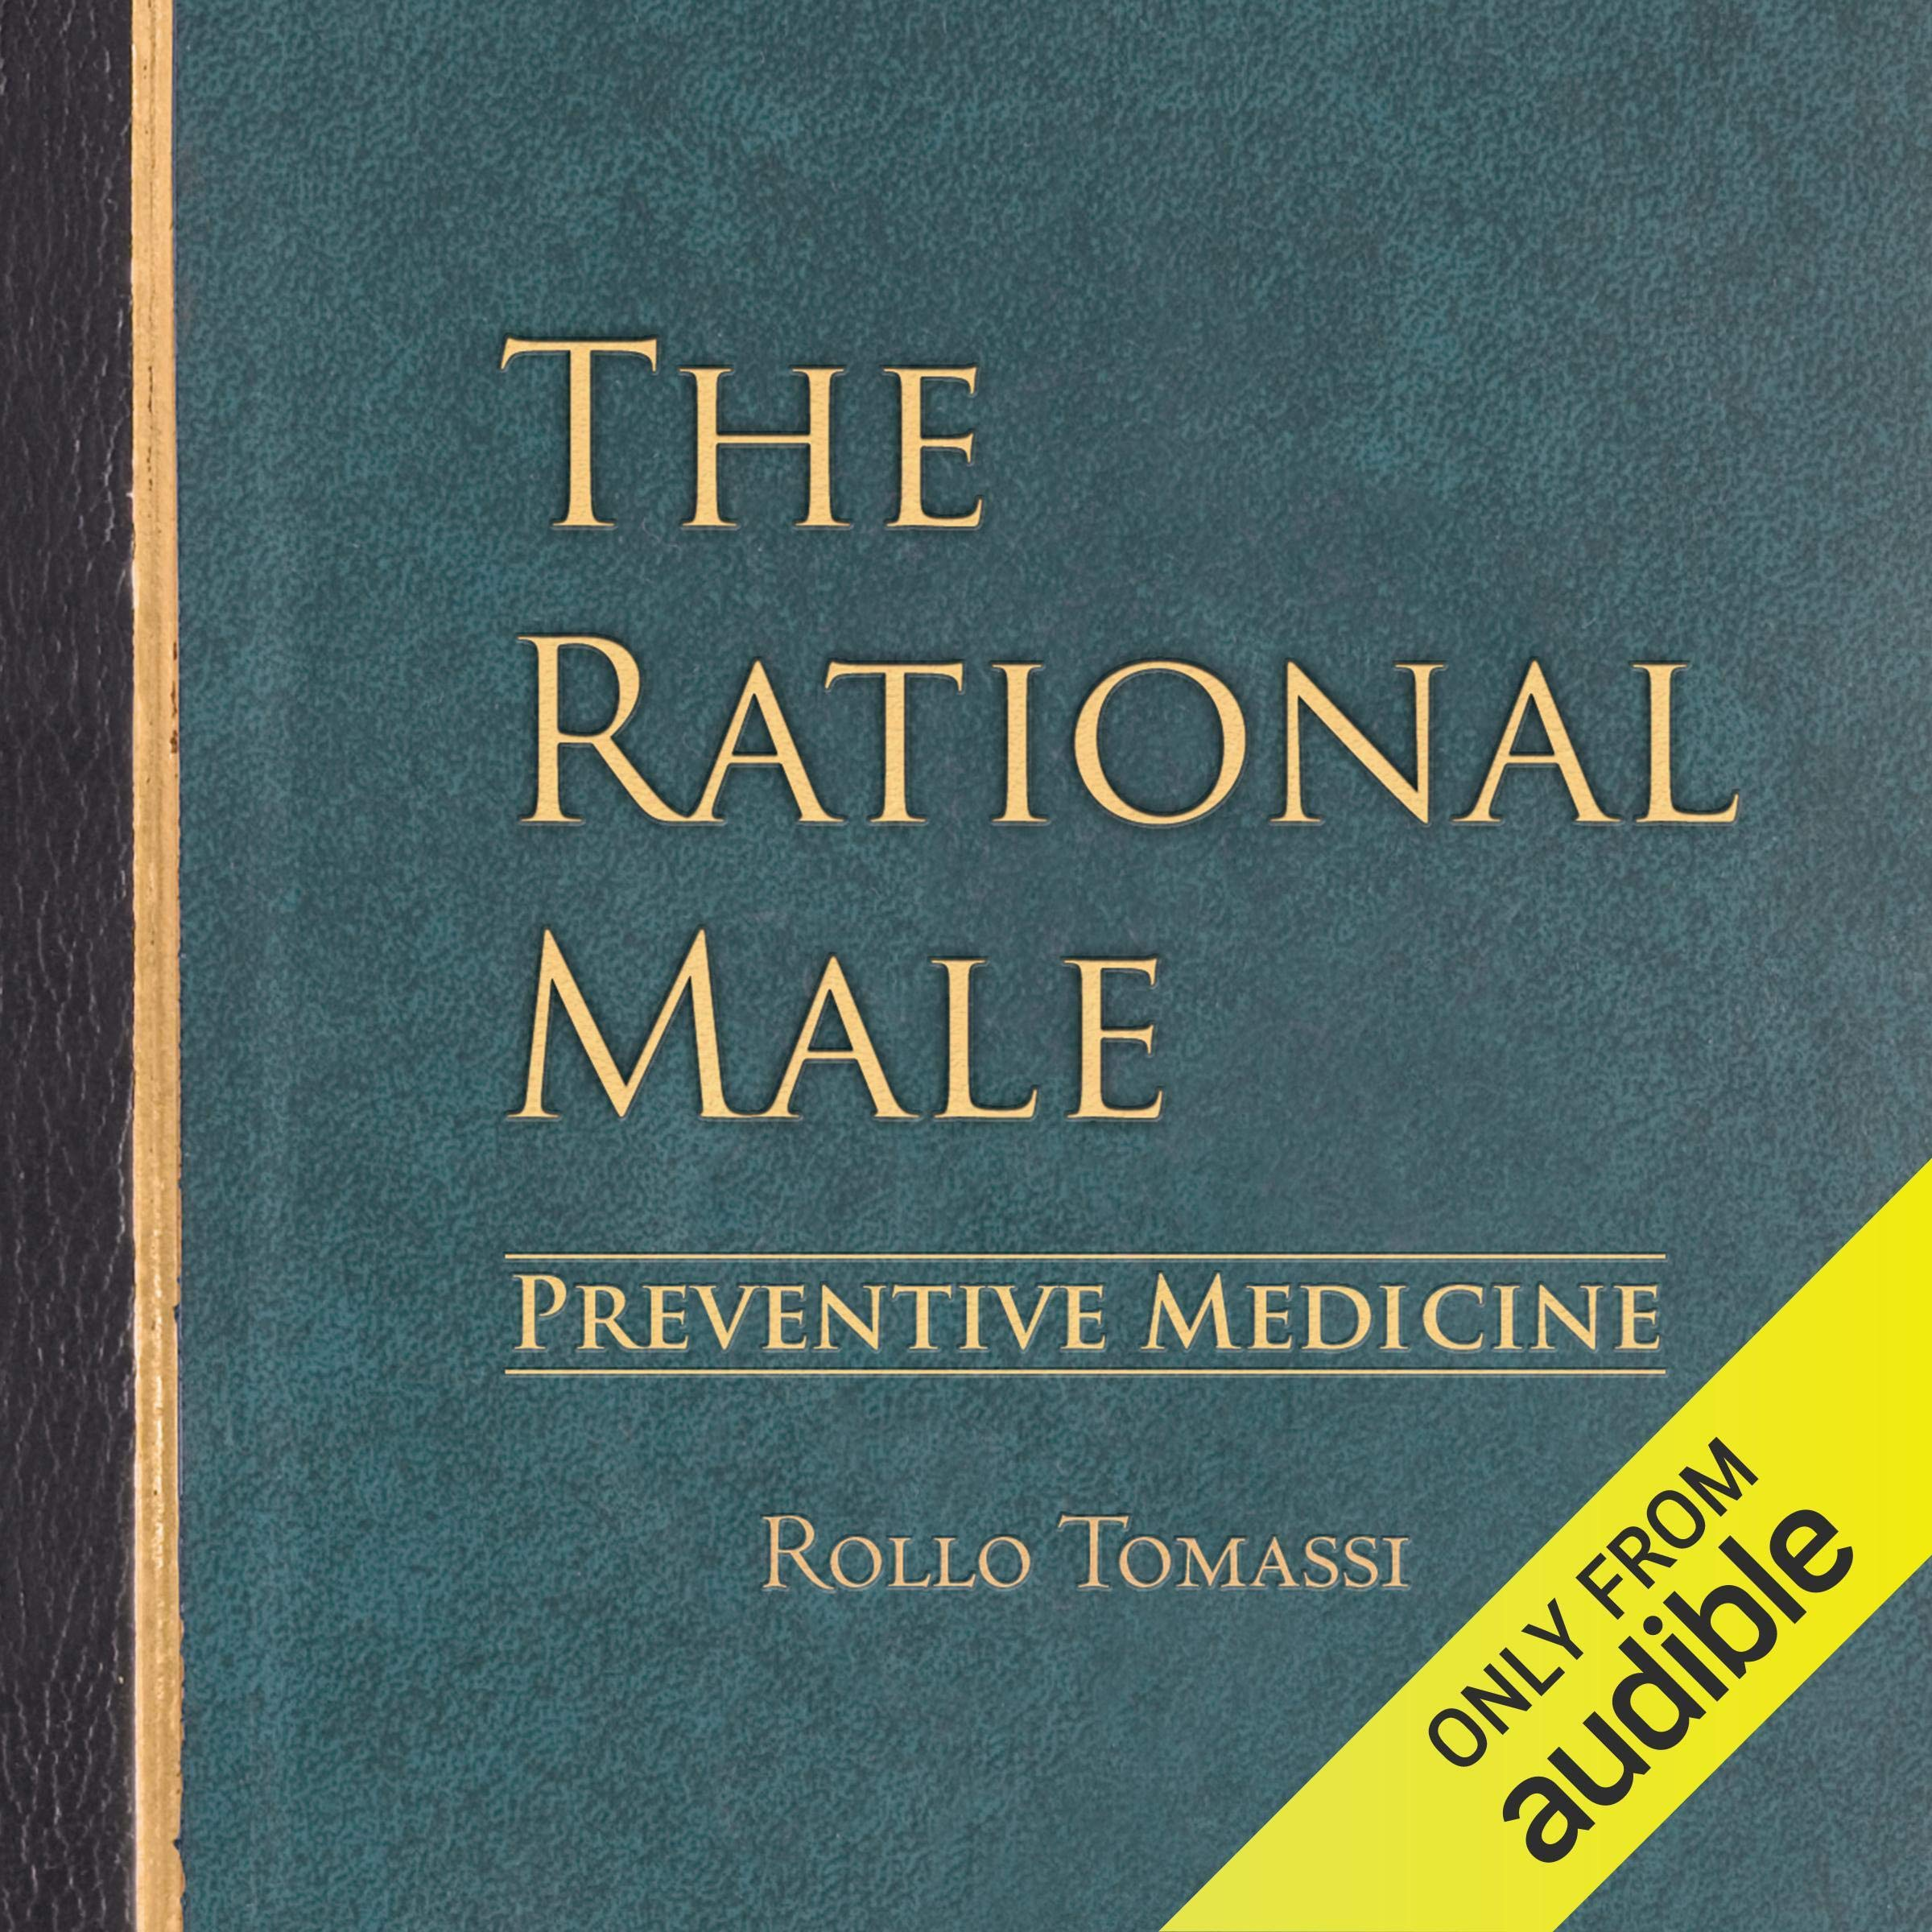 Preventive Medicine: The Rational Male, Book 2